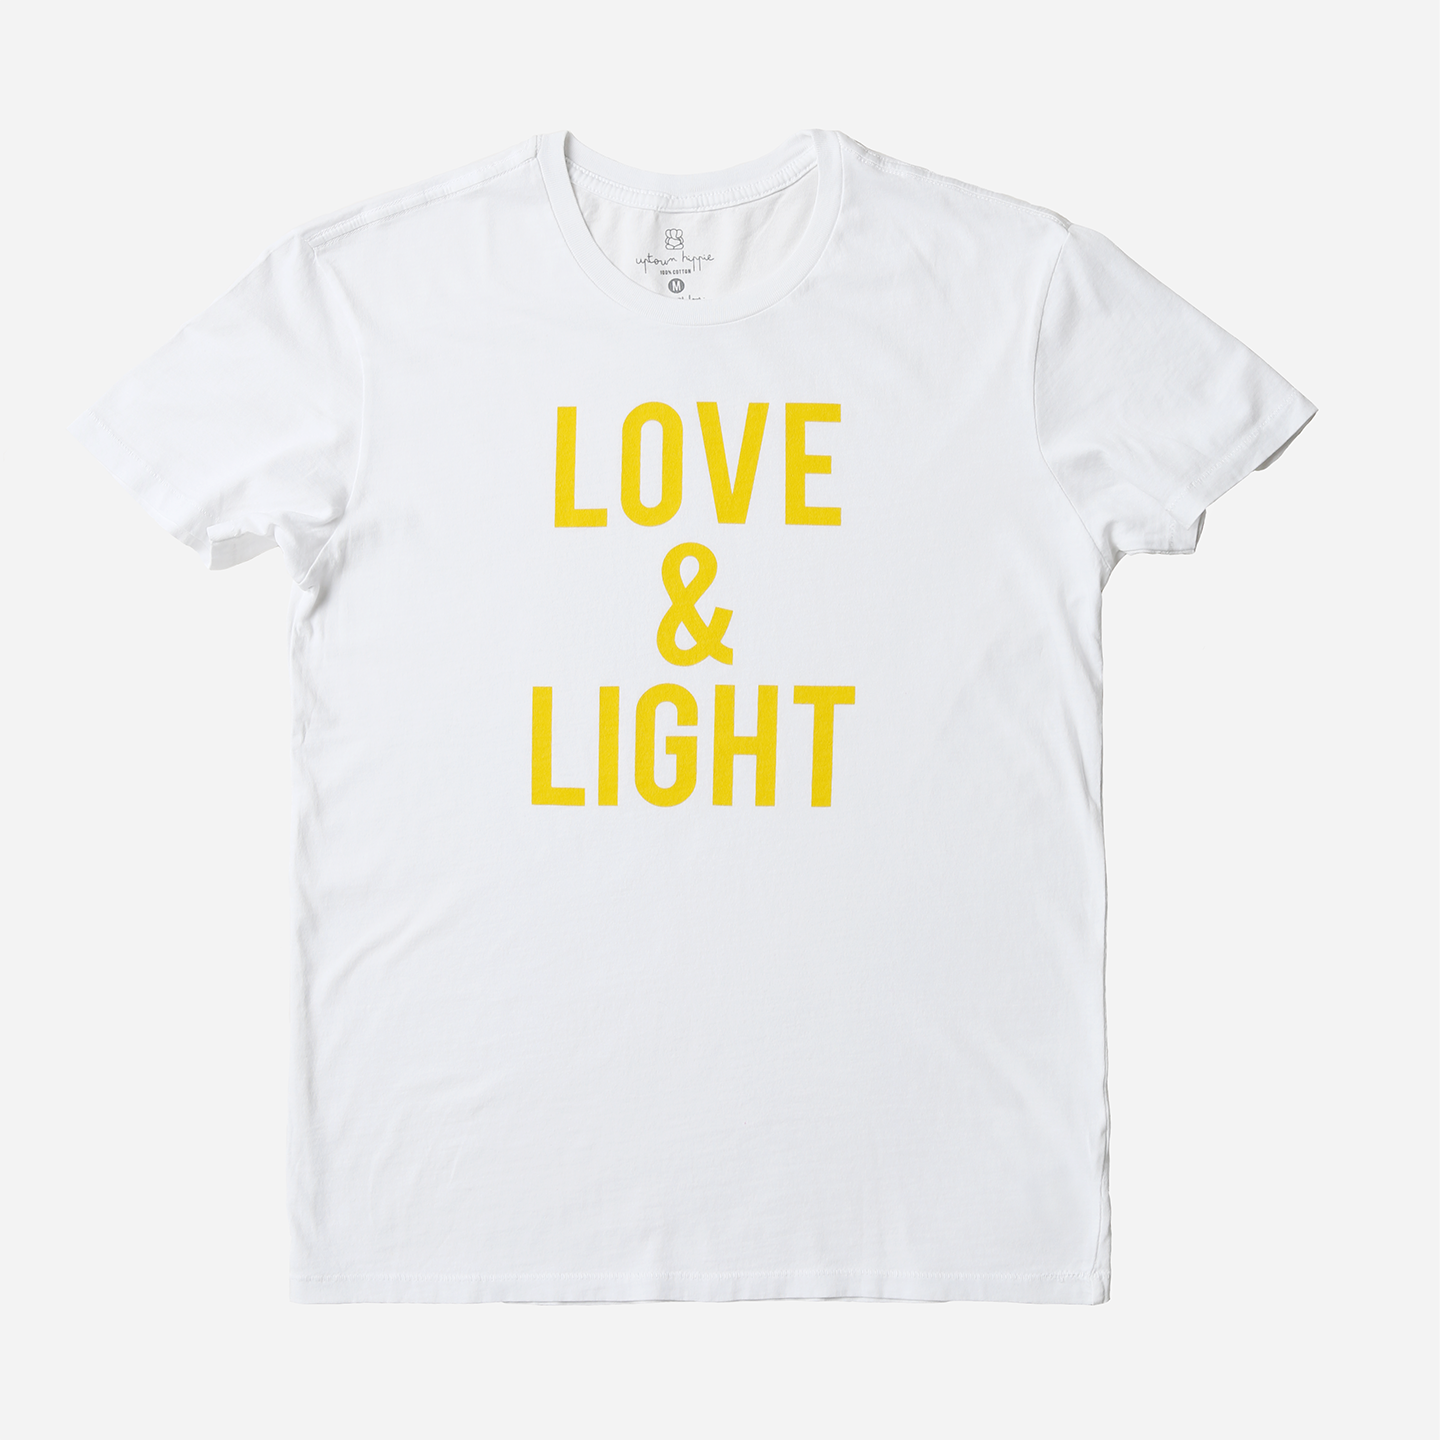 Love & Light Shirt